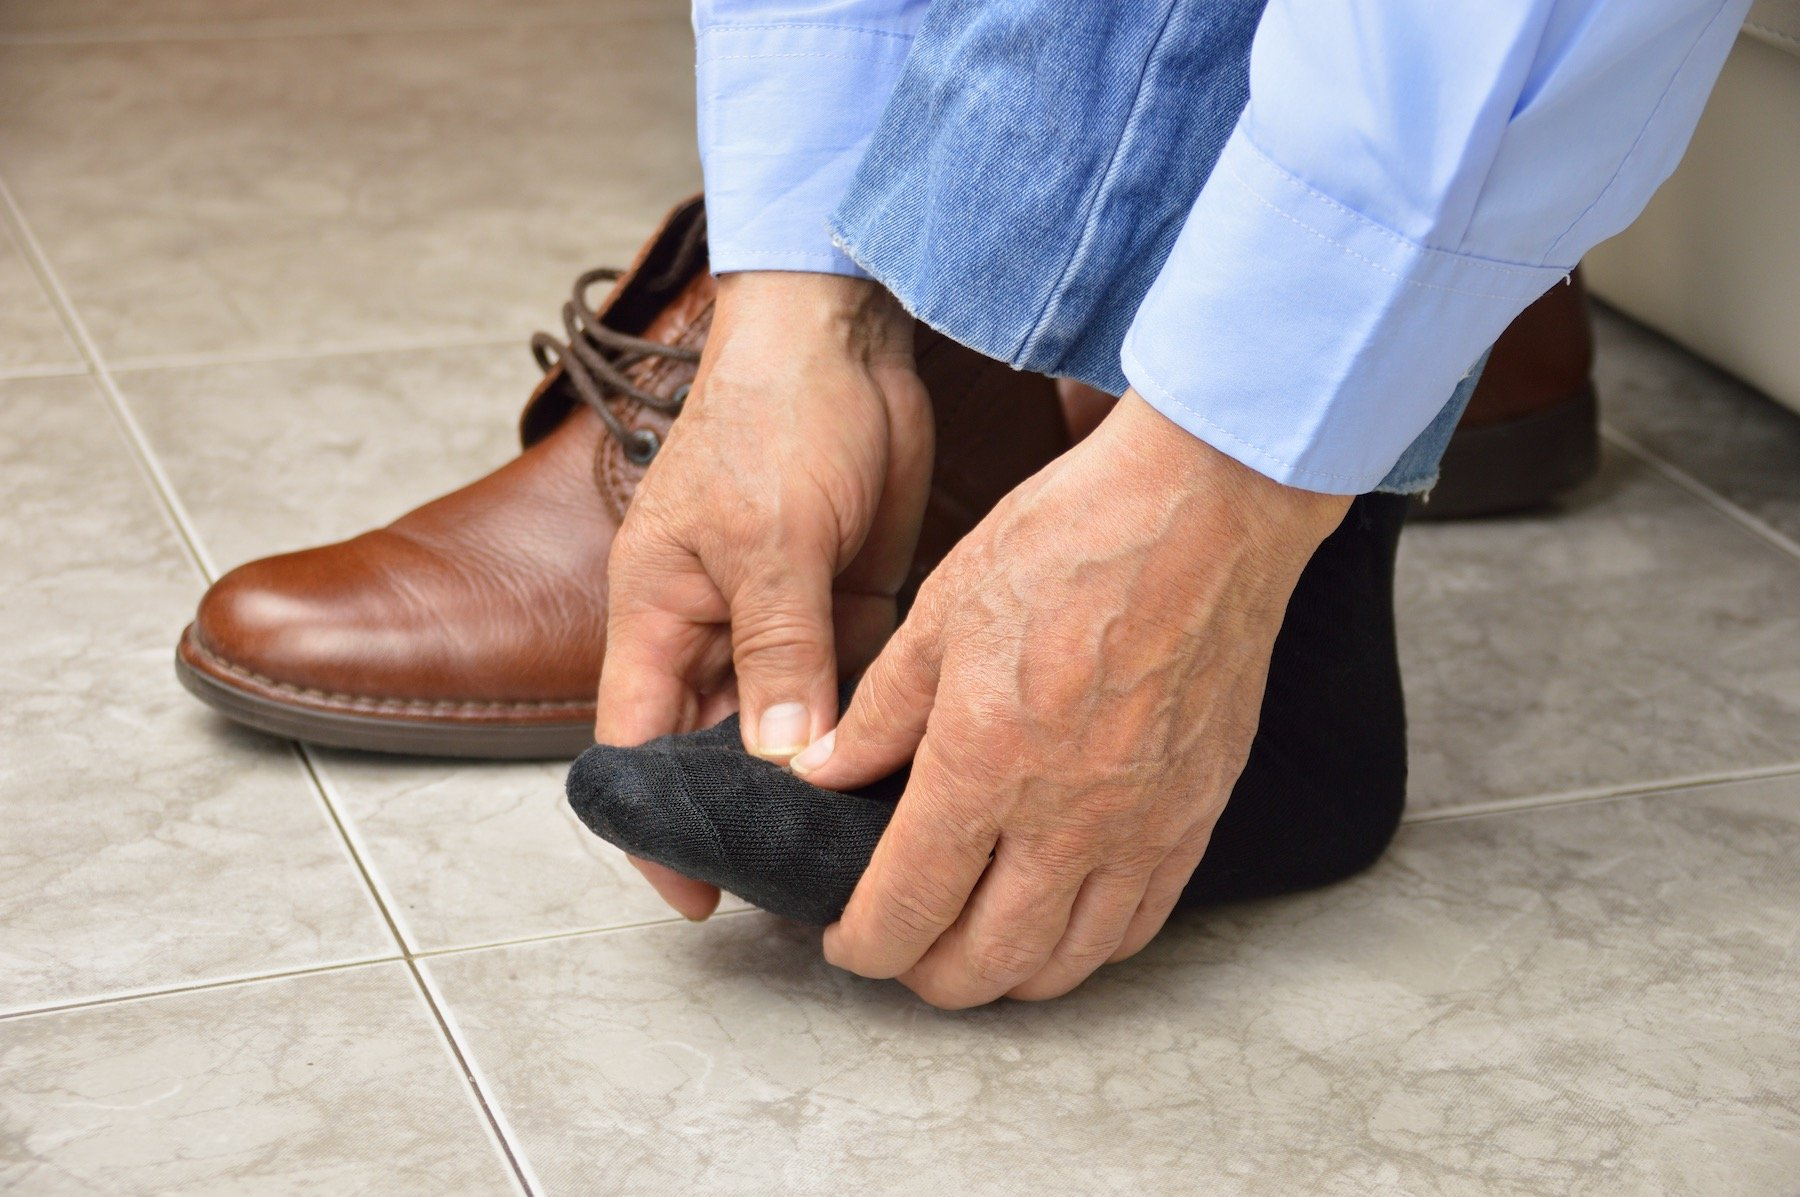 OLDER MAN HOLDING HIS FOOT IN PAIN